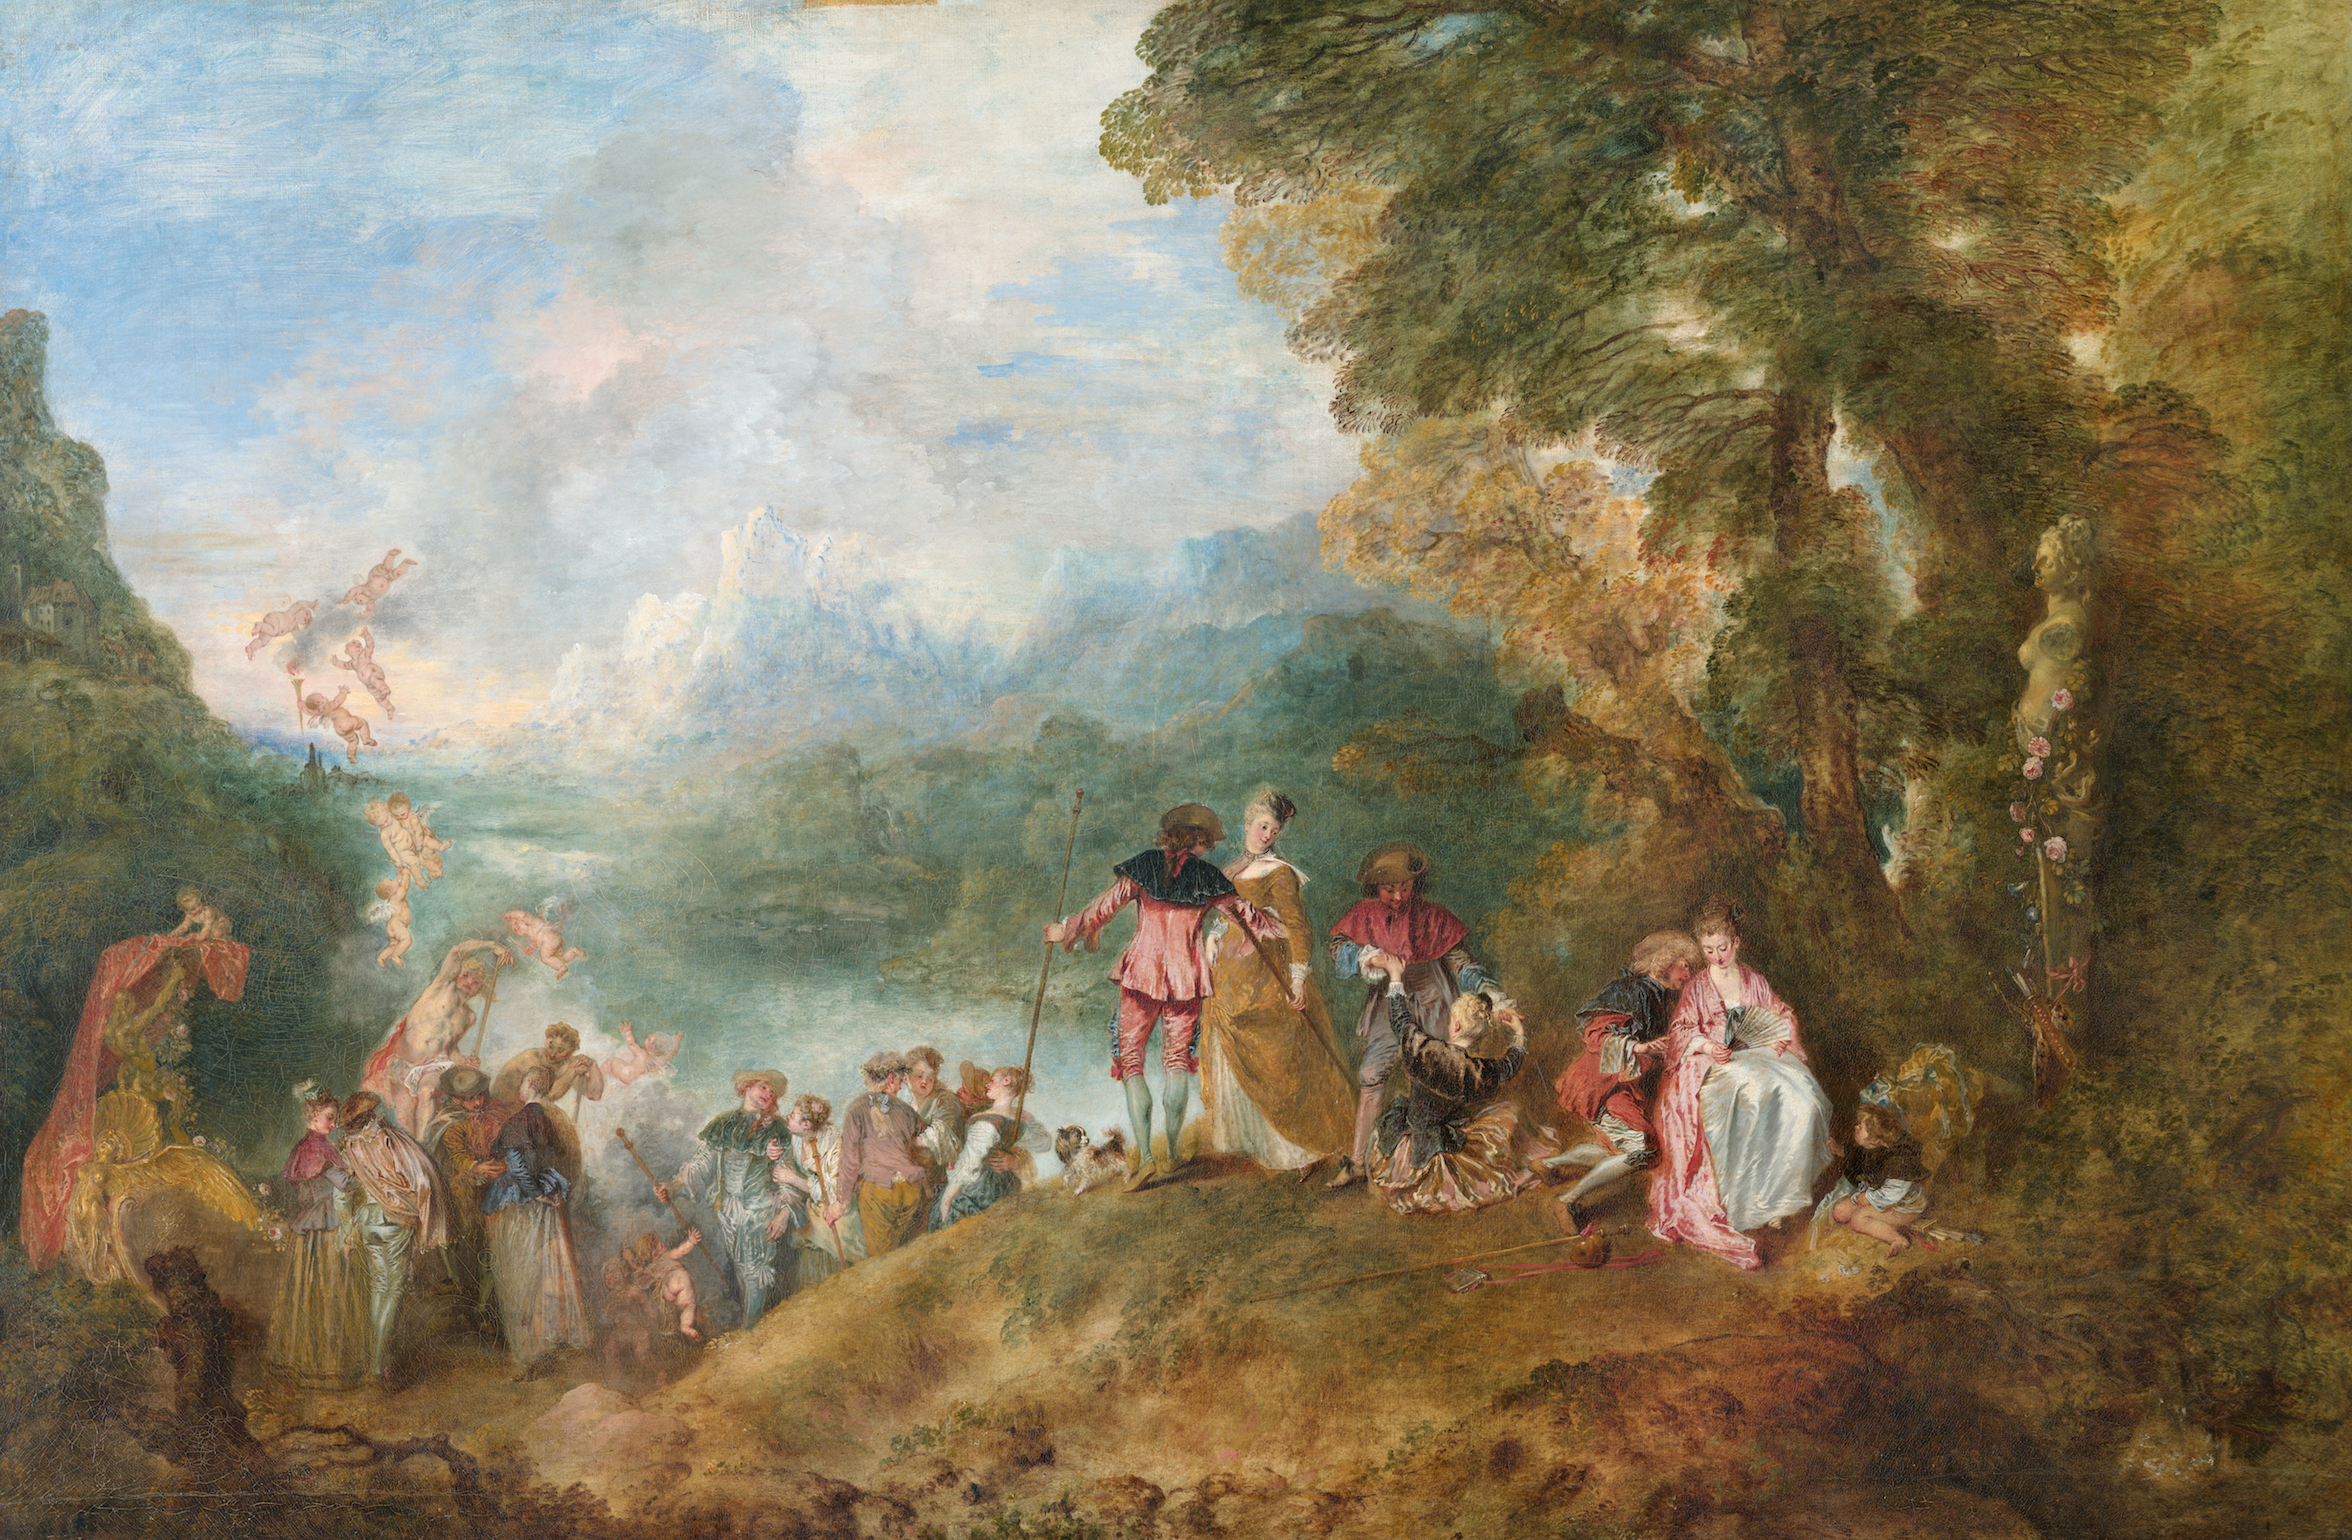 Watteau's Beloved Depiction of Dreamy Aristocratic Love is a Rococo Gem. Here Are 3 Things You May Not Know About It | Artnet News